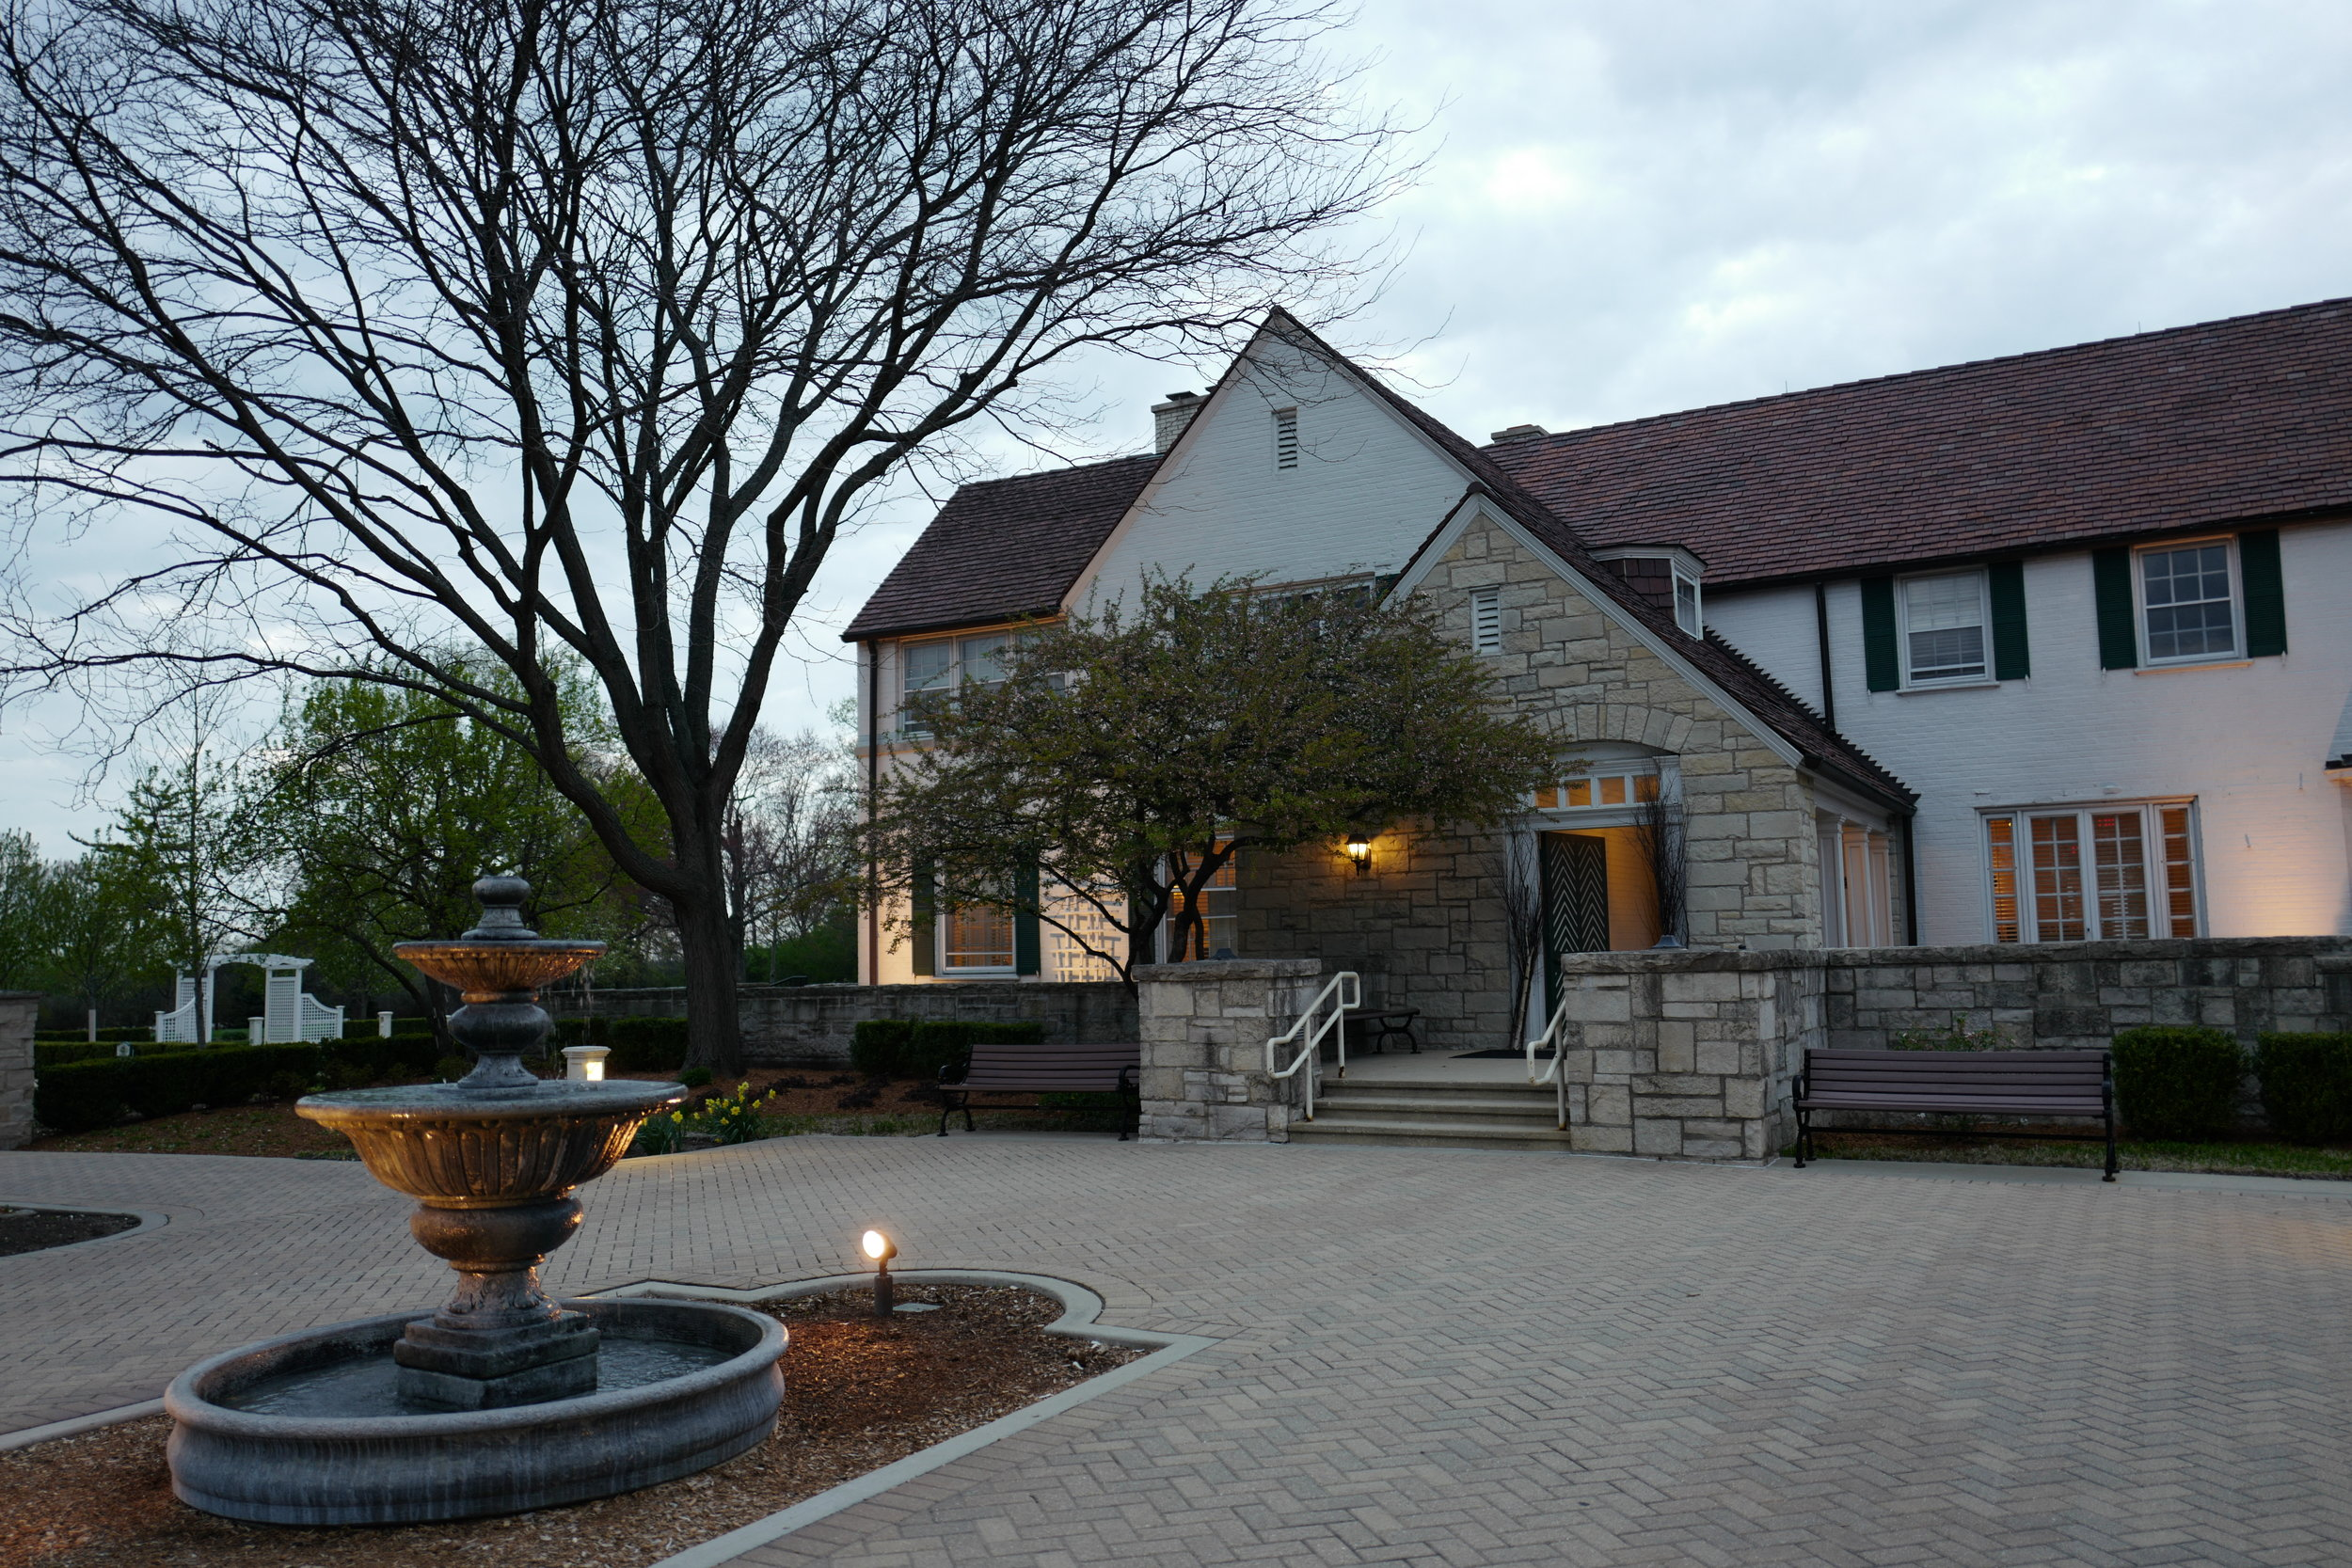 The exterior of the Danada House in Wheaton, IL